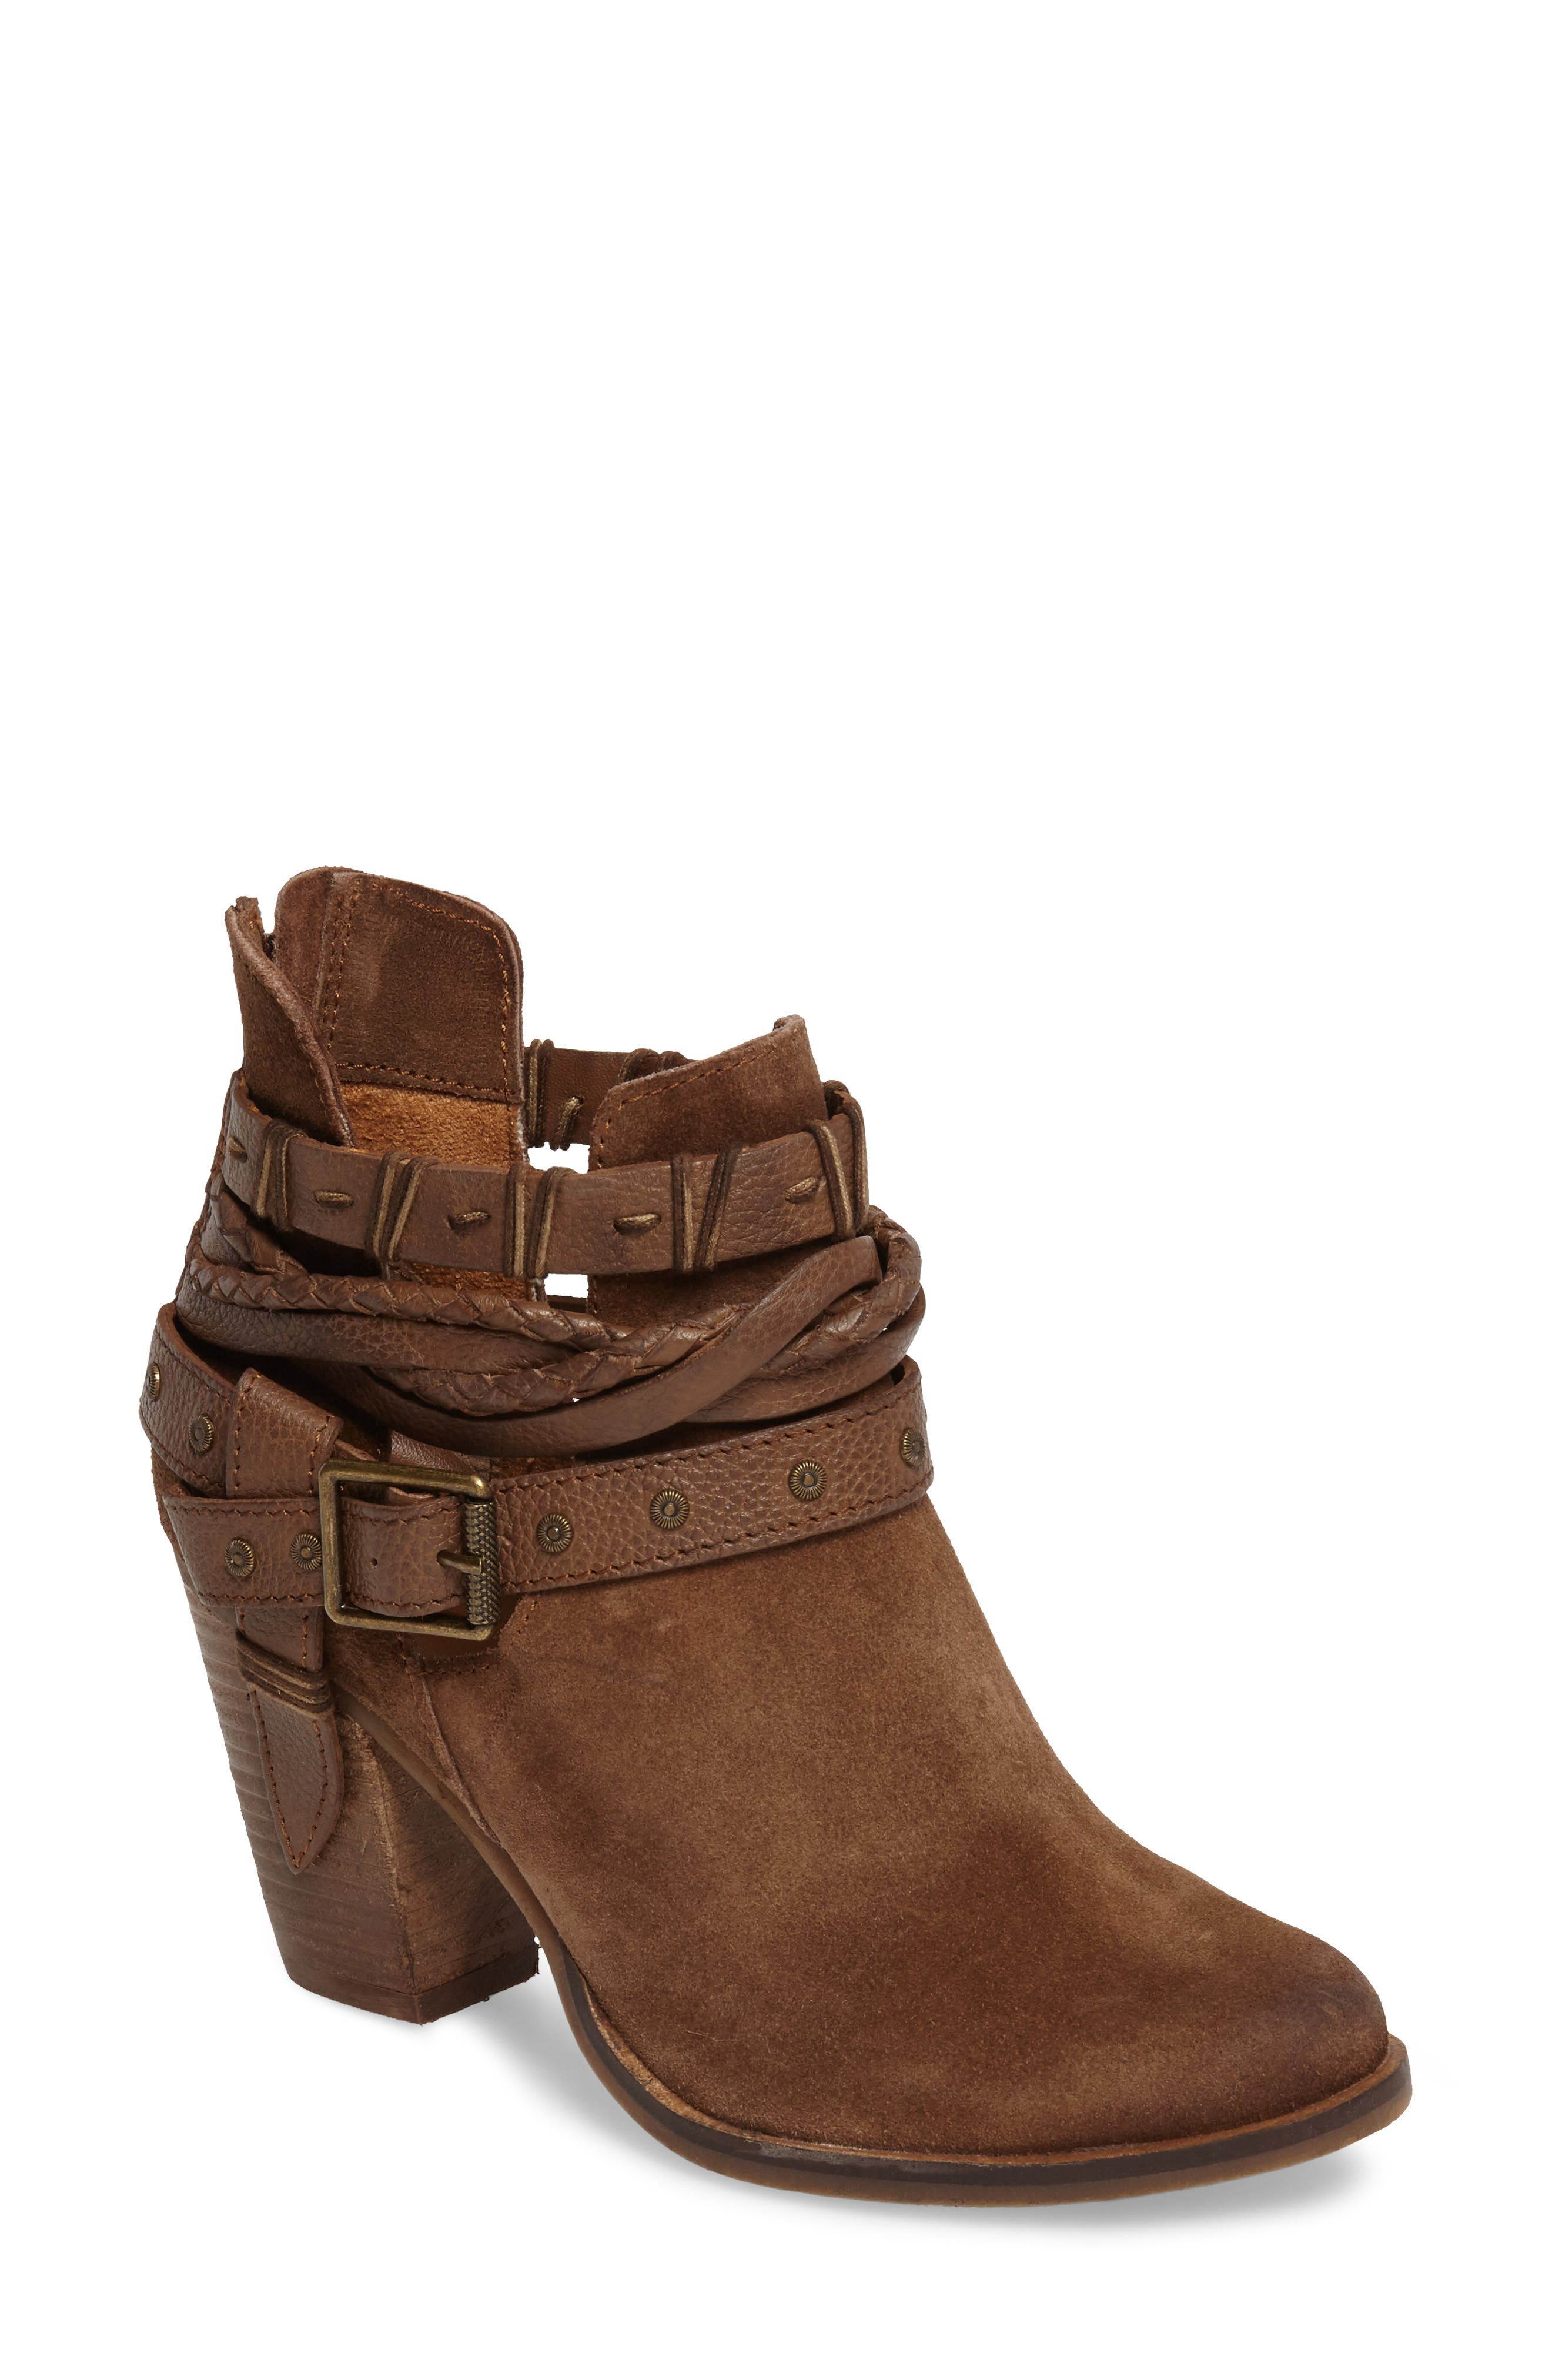 Cuthbert Strappy Bootie,                         Main,                         color, 200